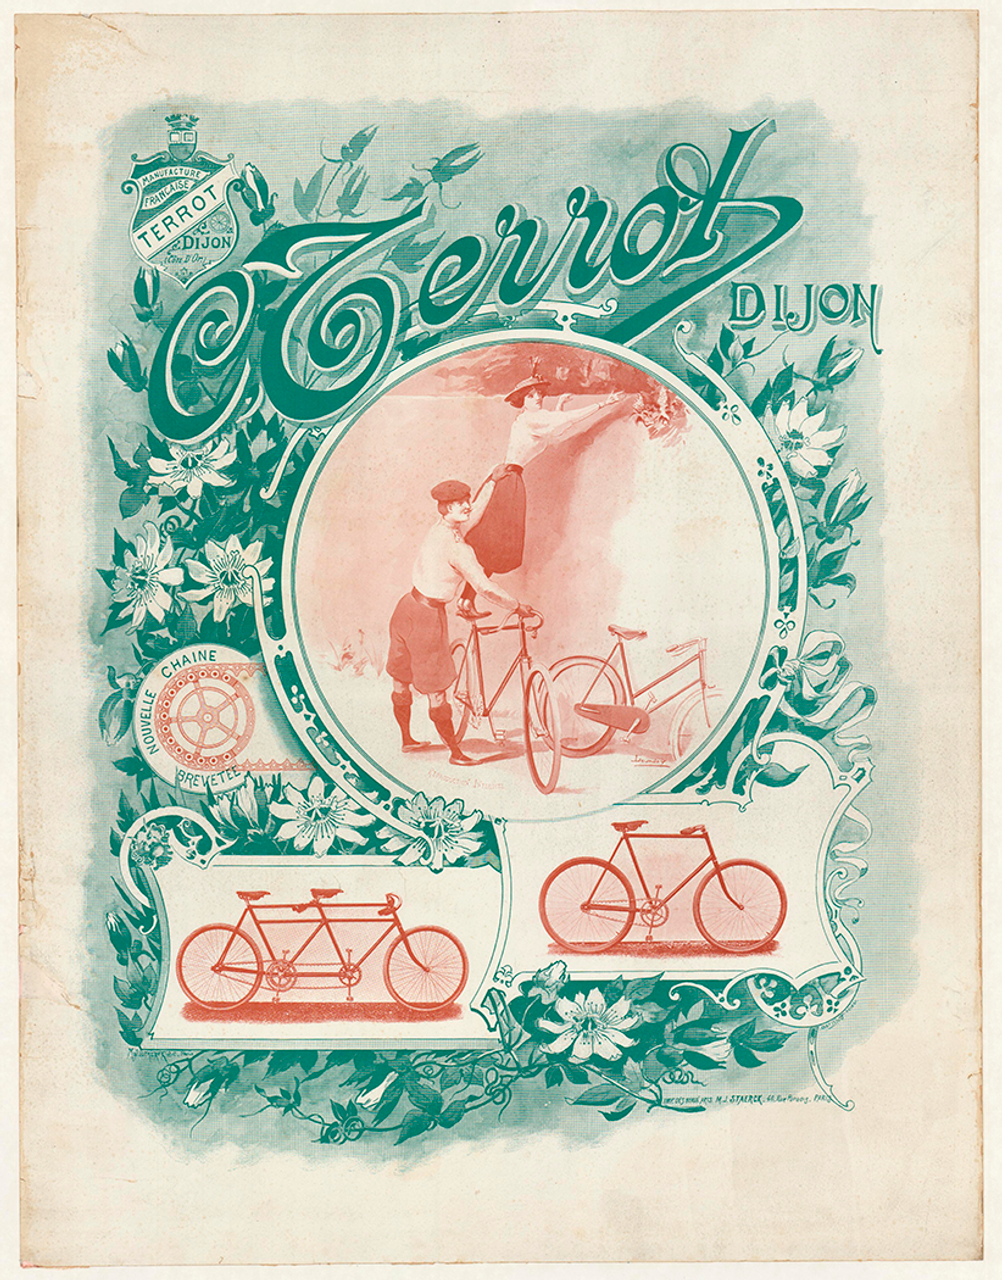 C Terrot Dijon Original Vintage Bicycle Poster